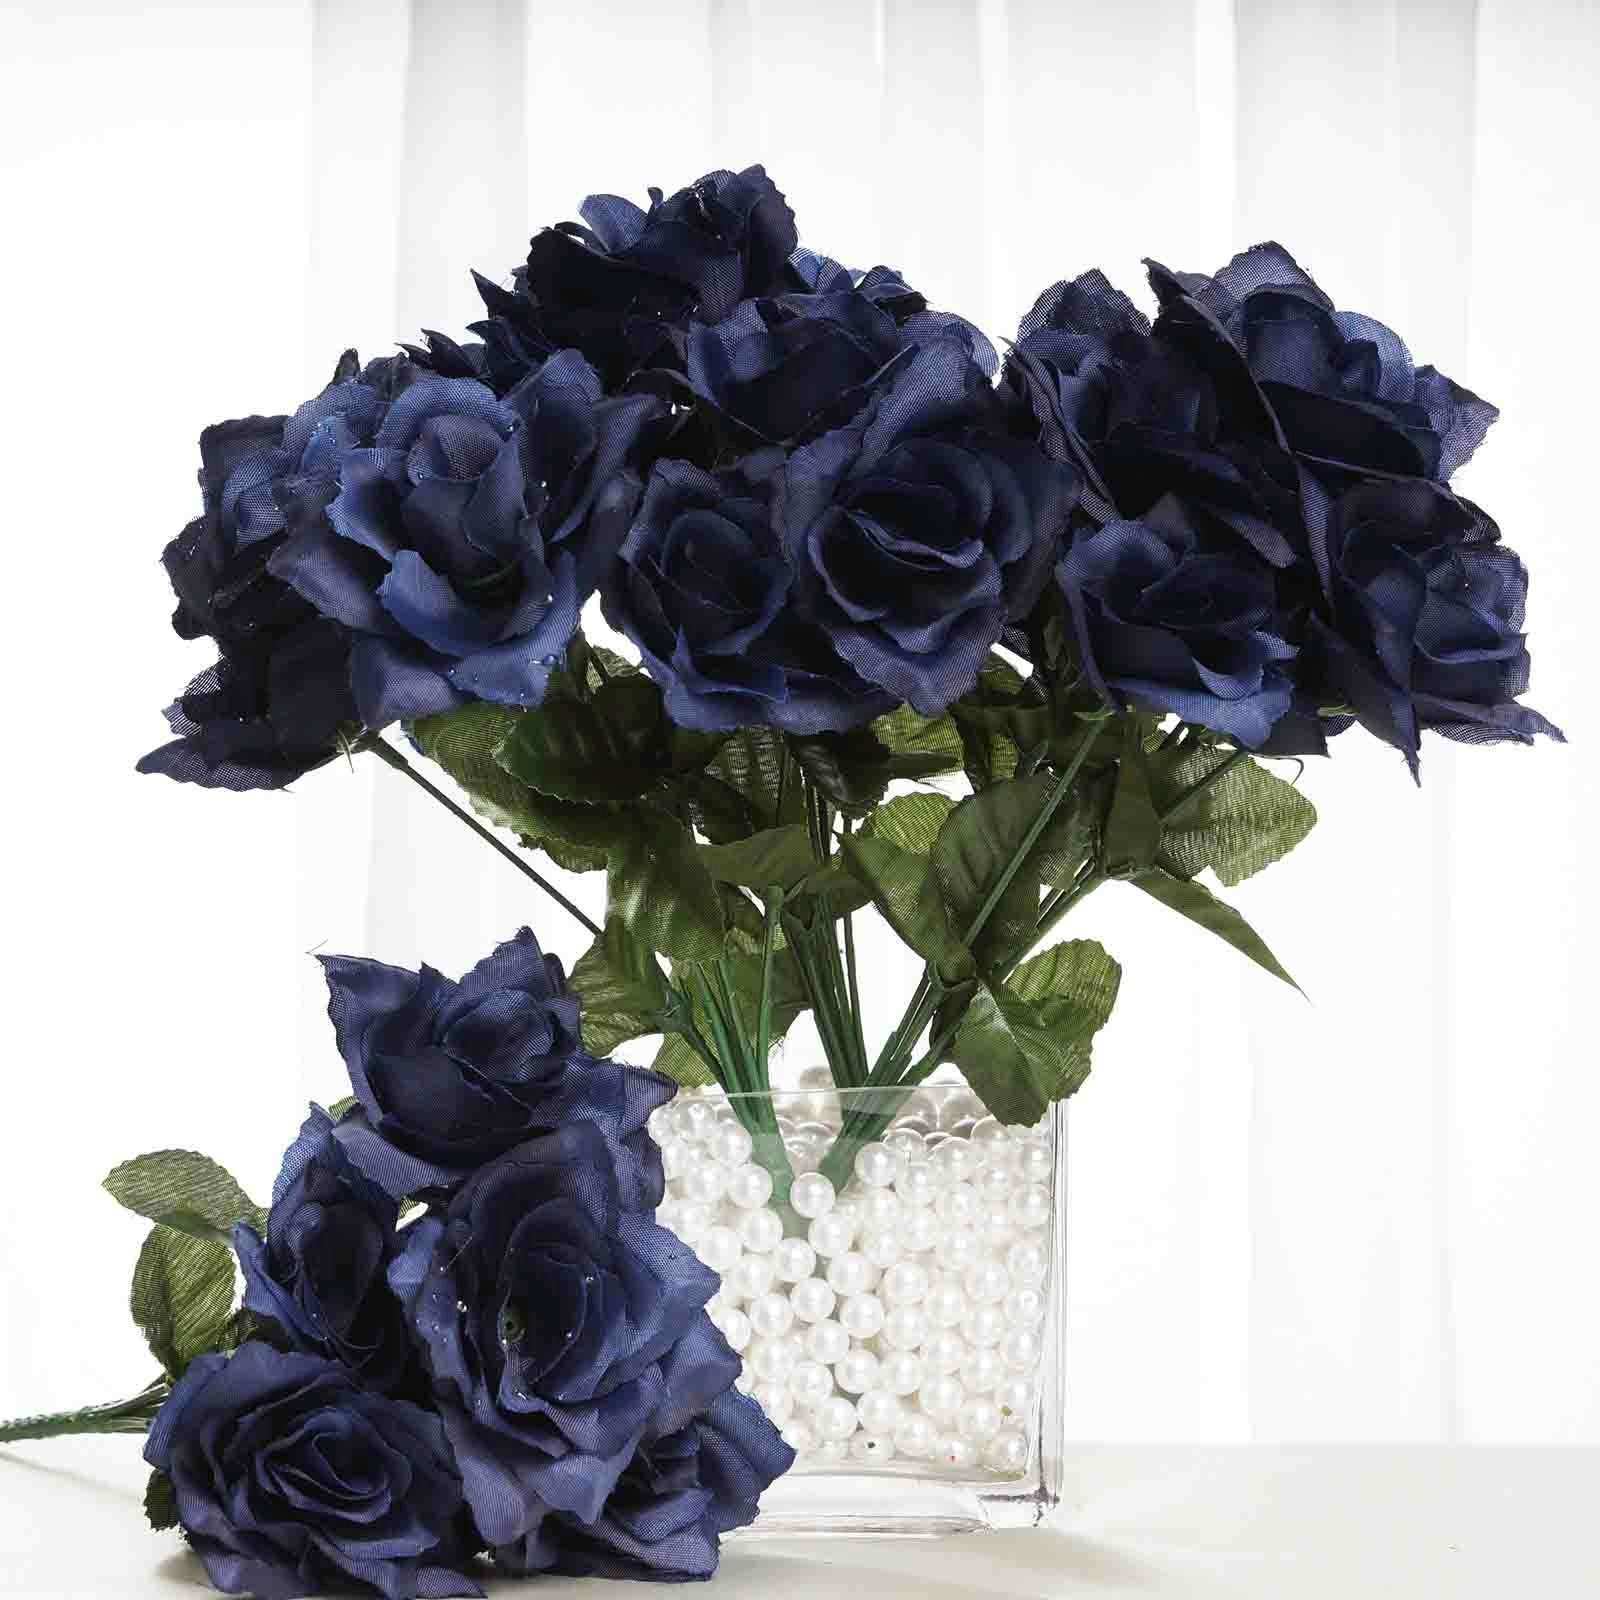 12 Bushes 84 Pcs Navy Blue Artificial Silk Rose Flowers With Green